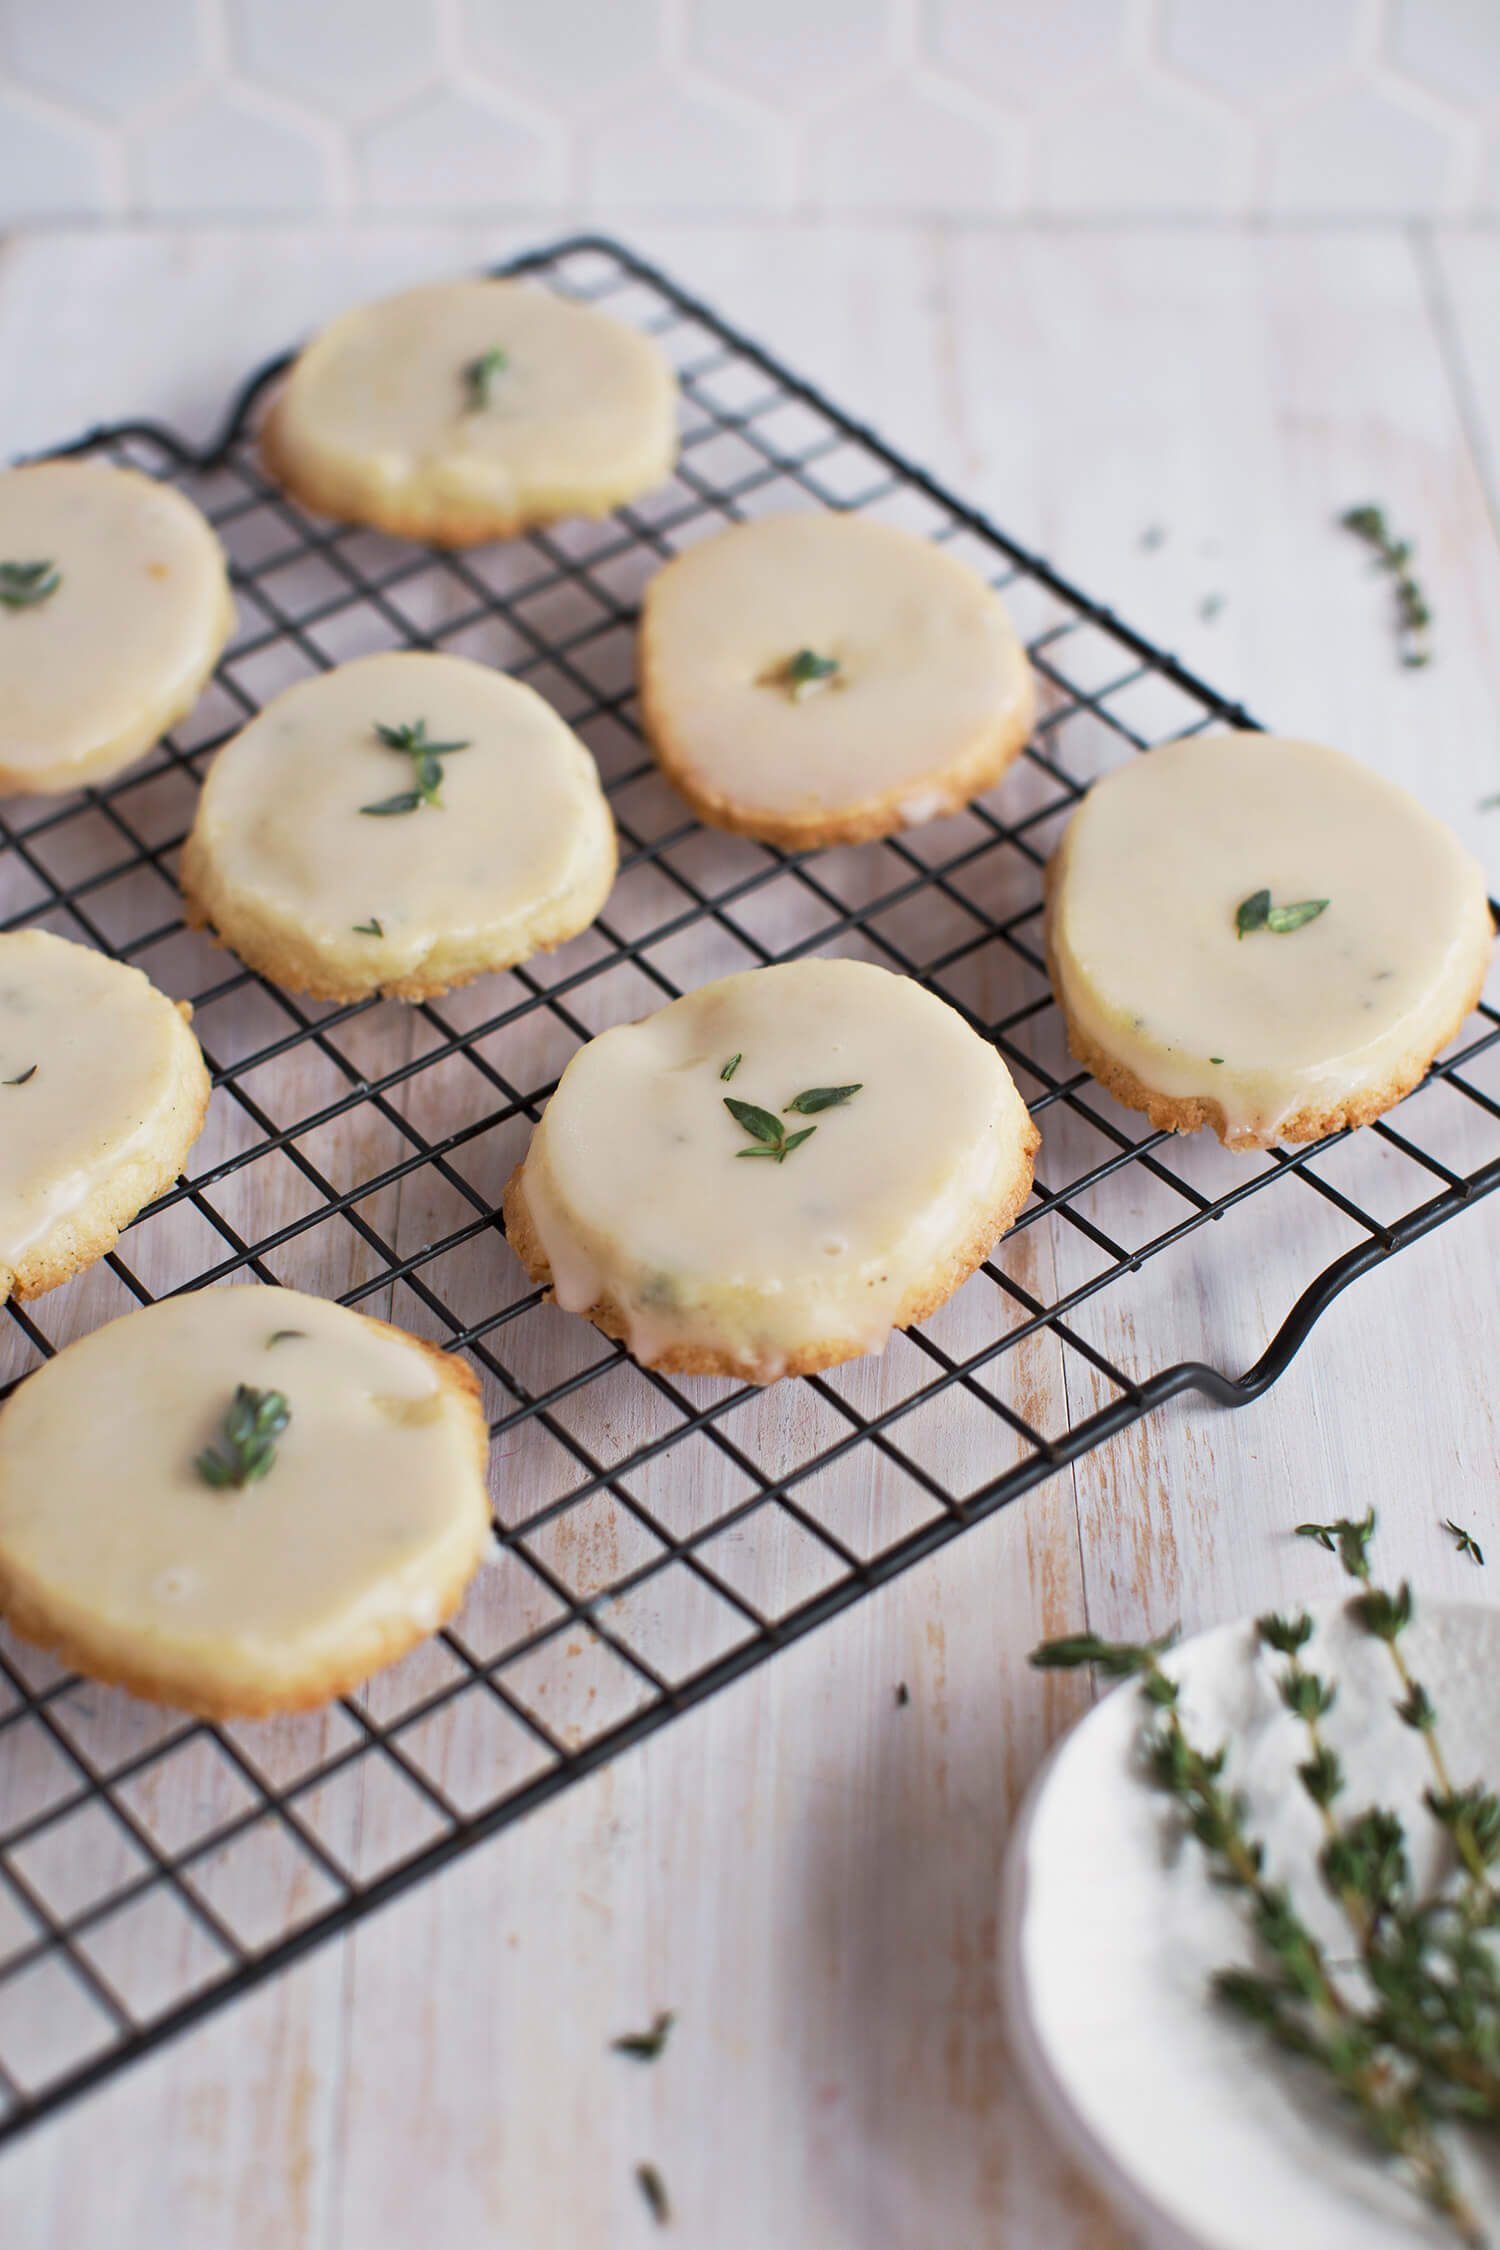 Vanilla Bean and Thyme Slice and Bake Cookies (via abeautifulmess.com)